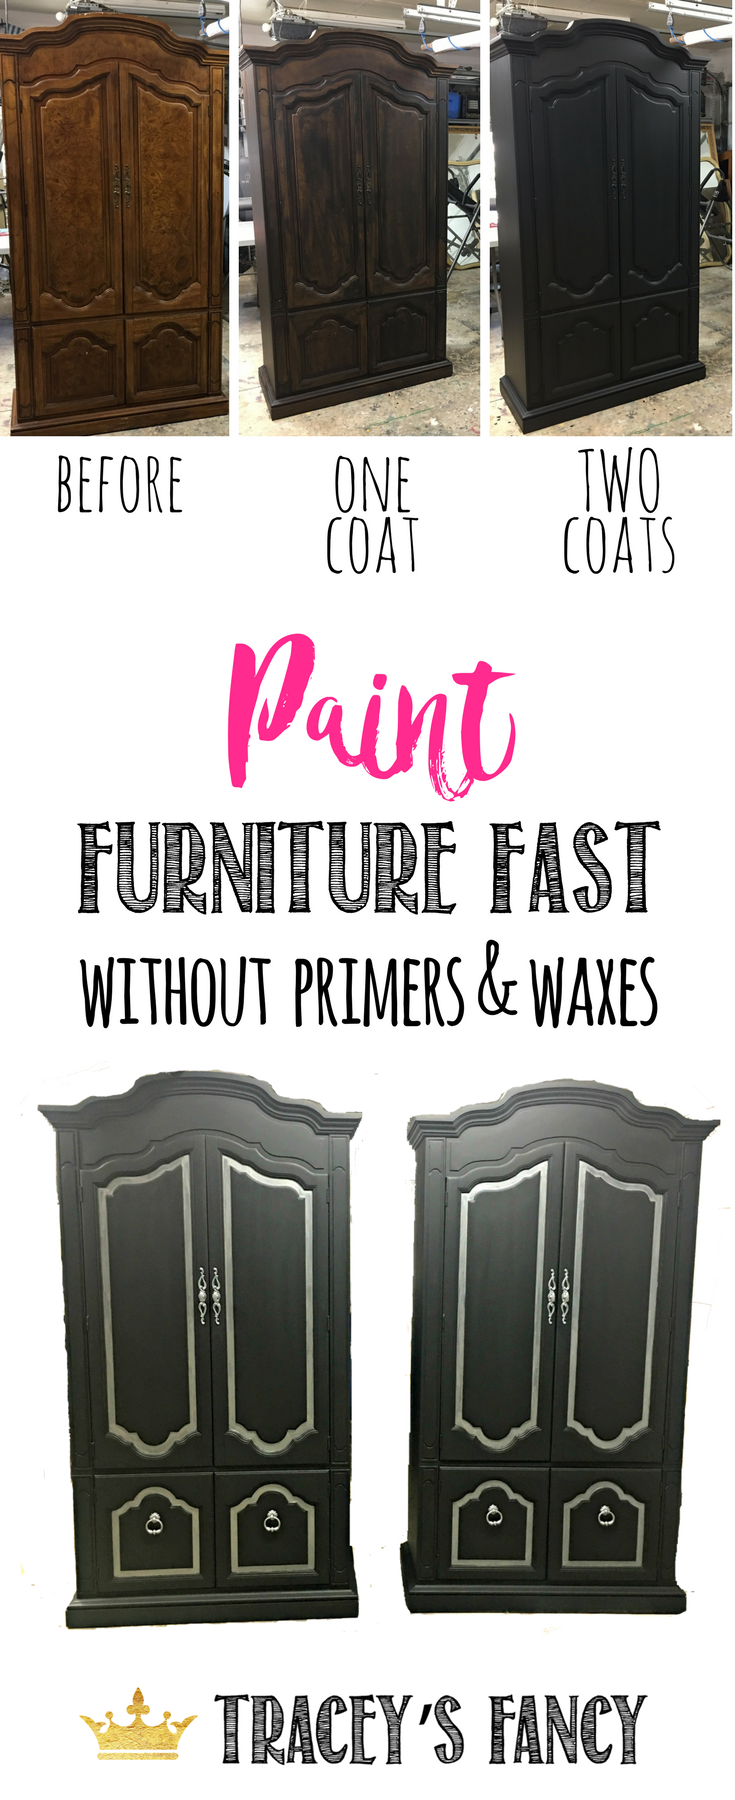 How to Paint Furniture Fast without primers or waxes | Furniture Painting Tips by Traceys Fancy | Heirloom Traditions All in One Chalk Type Paint